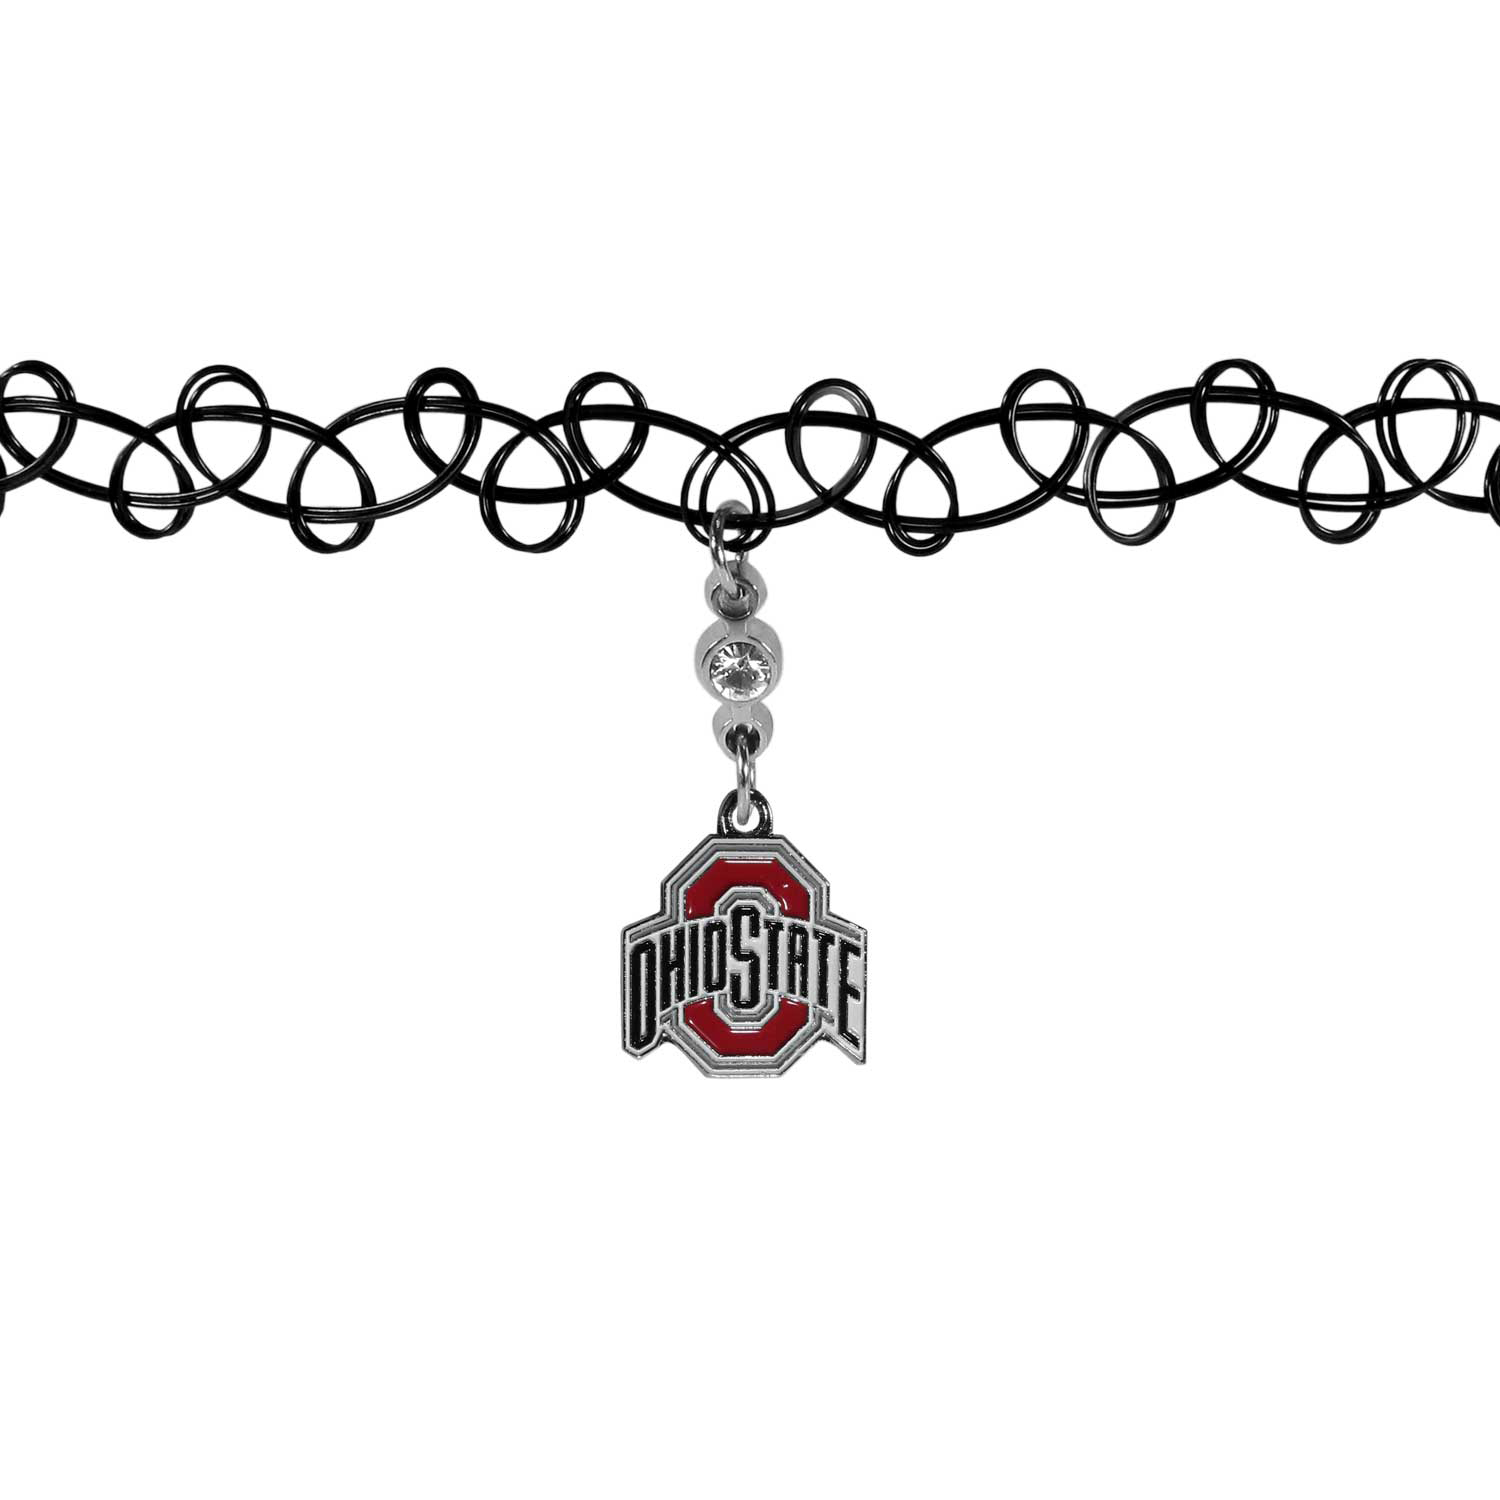 Ohio St. Buckeyes Knotted Choker - This retro, knotted choker is a cool and unique piece of fan jewelry. The tattoo style choker features a high polish Ohio St. Buckeyes charm with rhinestone accents.